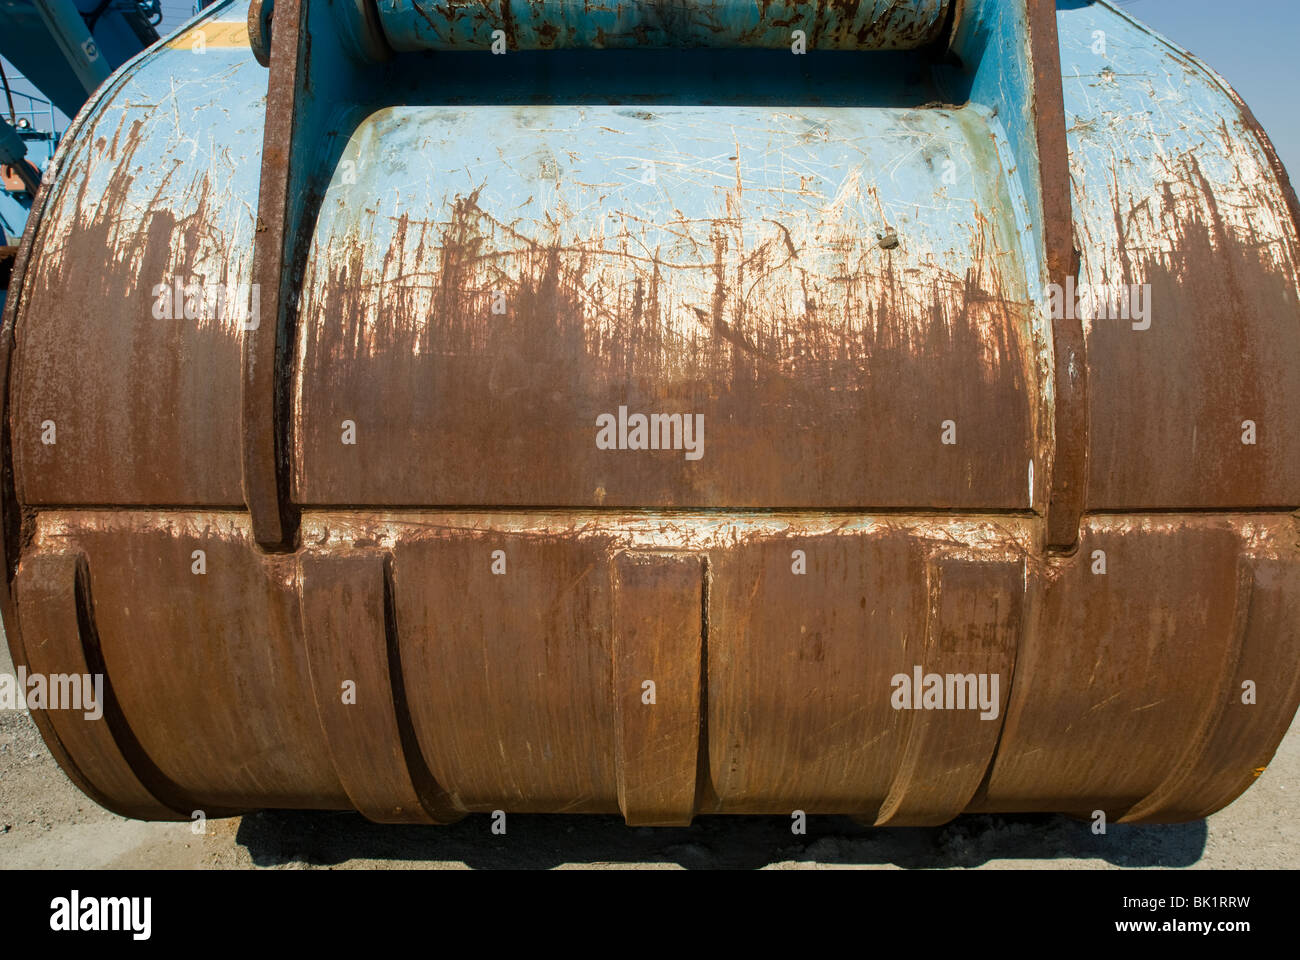 Heavy duty earth moving equipment parked in Staten Island in New York - Stock Image